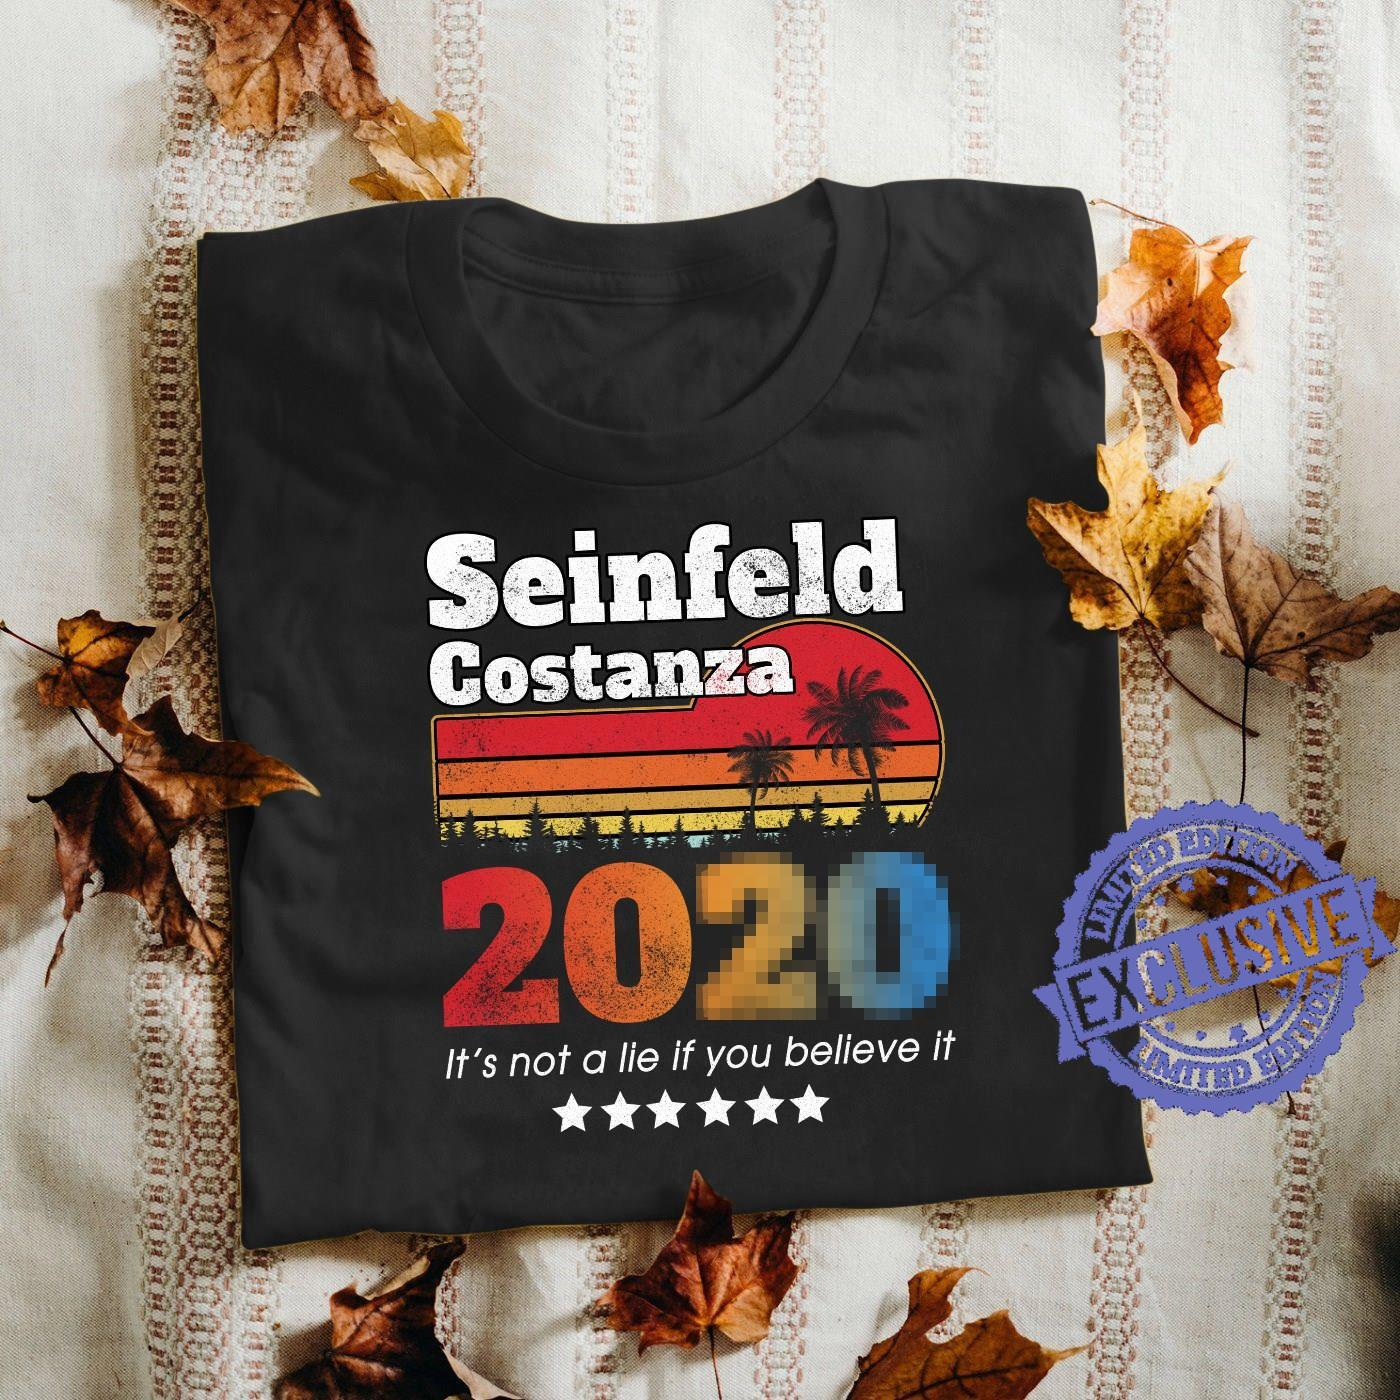 Seinfeld costanza 2020 it's not a lie if you believe it shirt